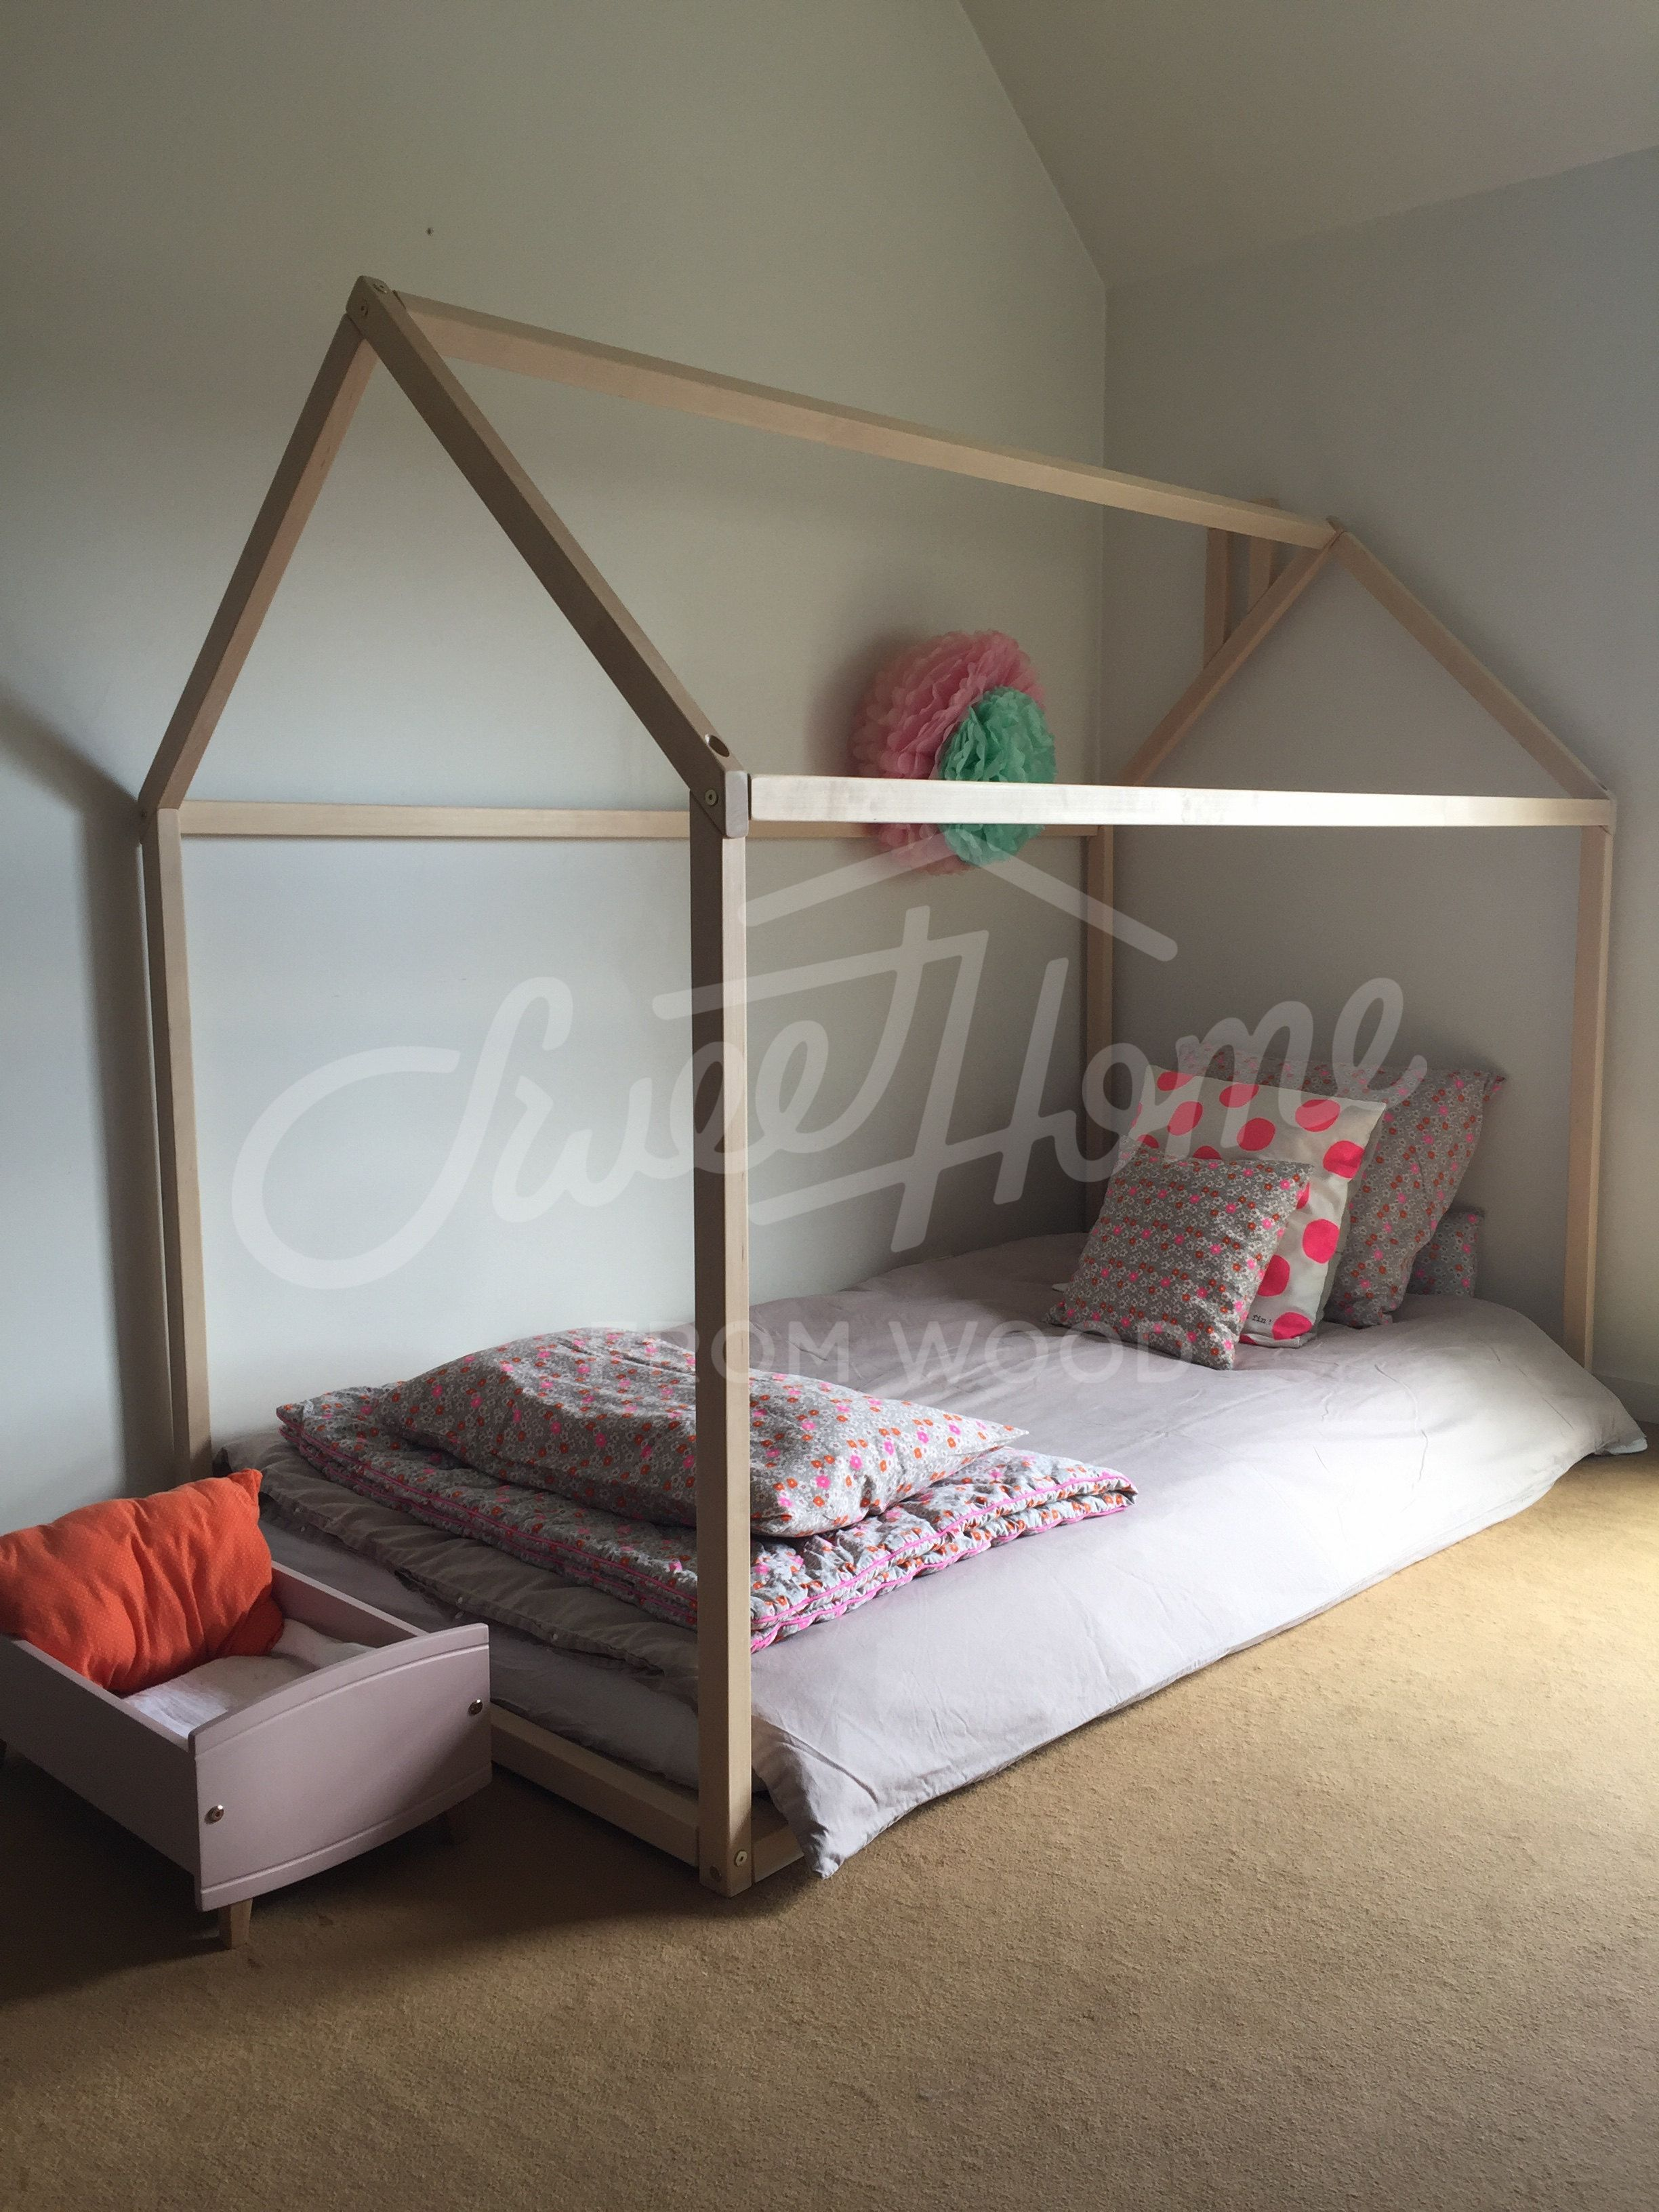 Pastel And Neutral Themed Kids Room Toddler Bed Pink Polka Dots Childrens Room House Bed Tent Bed Children Bed Wooden House Beds Bed Tent House Frame Bed